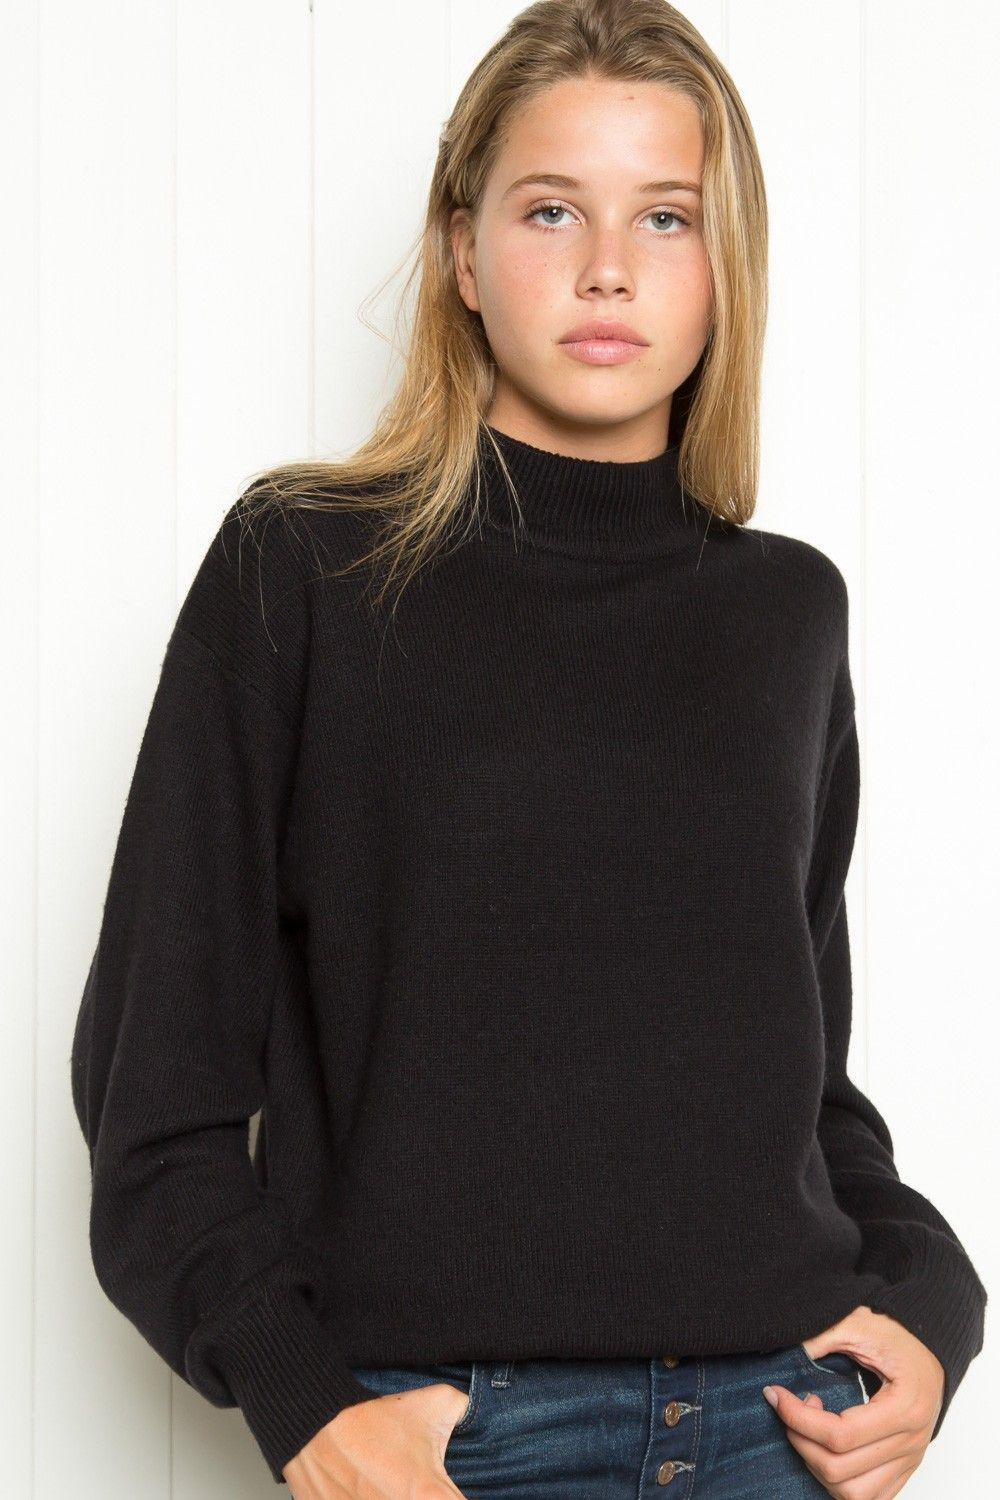 Brandy ♥ Melville | Marlene Turtleneck Sweater - Pullovers ...